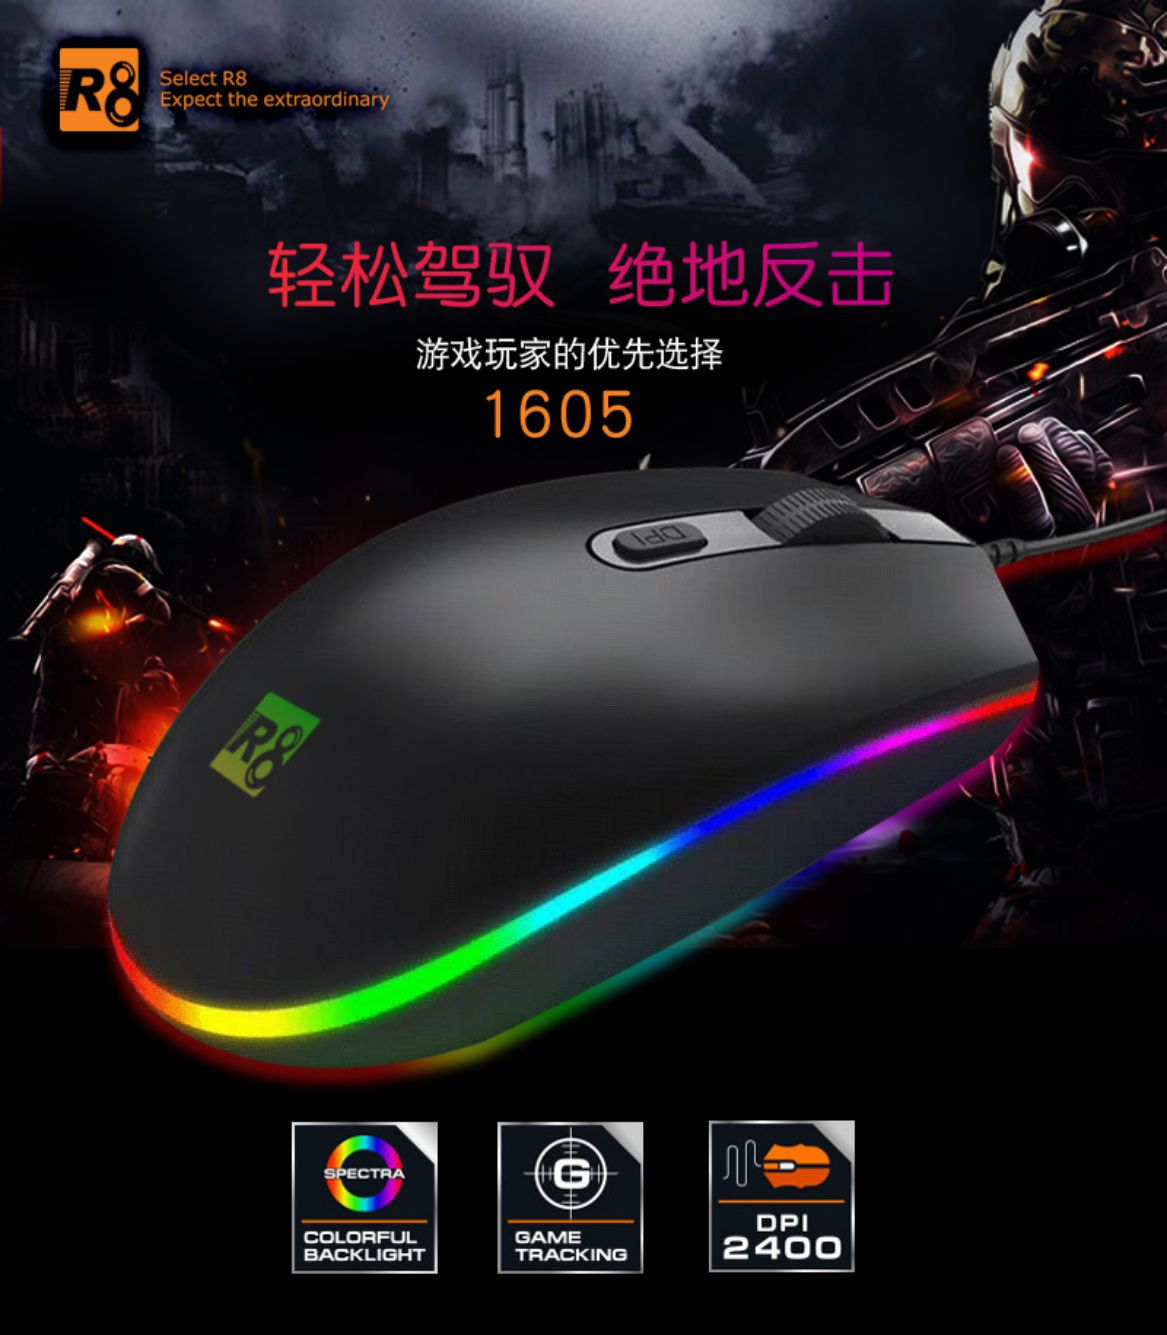 Kit 5x Mouse Gamer LED RGB R8 M1605